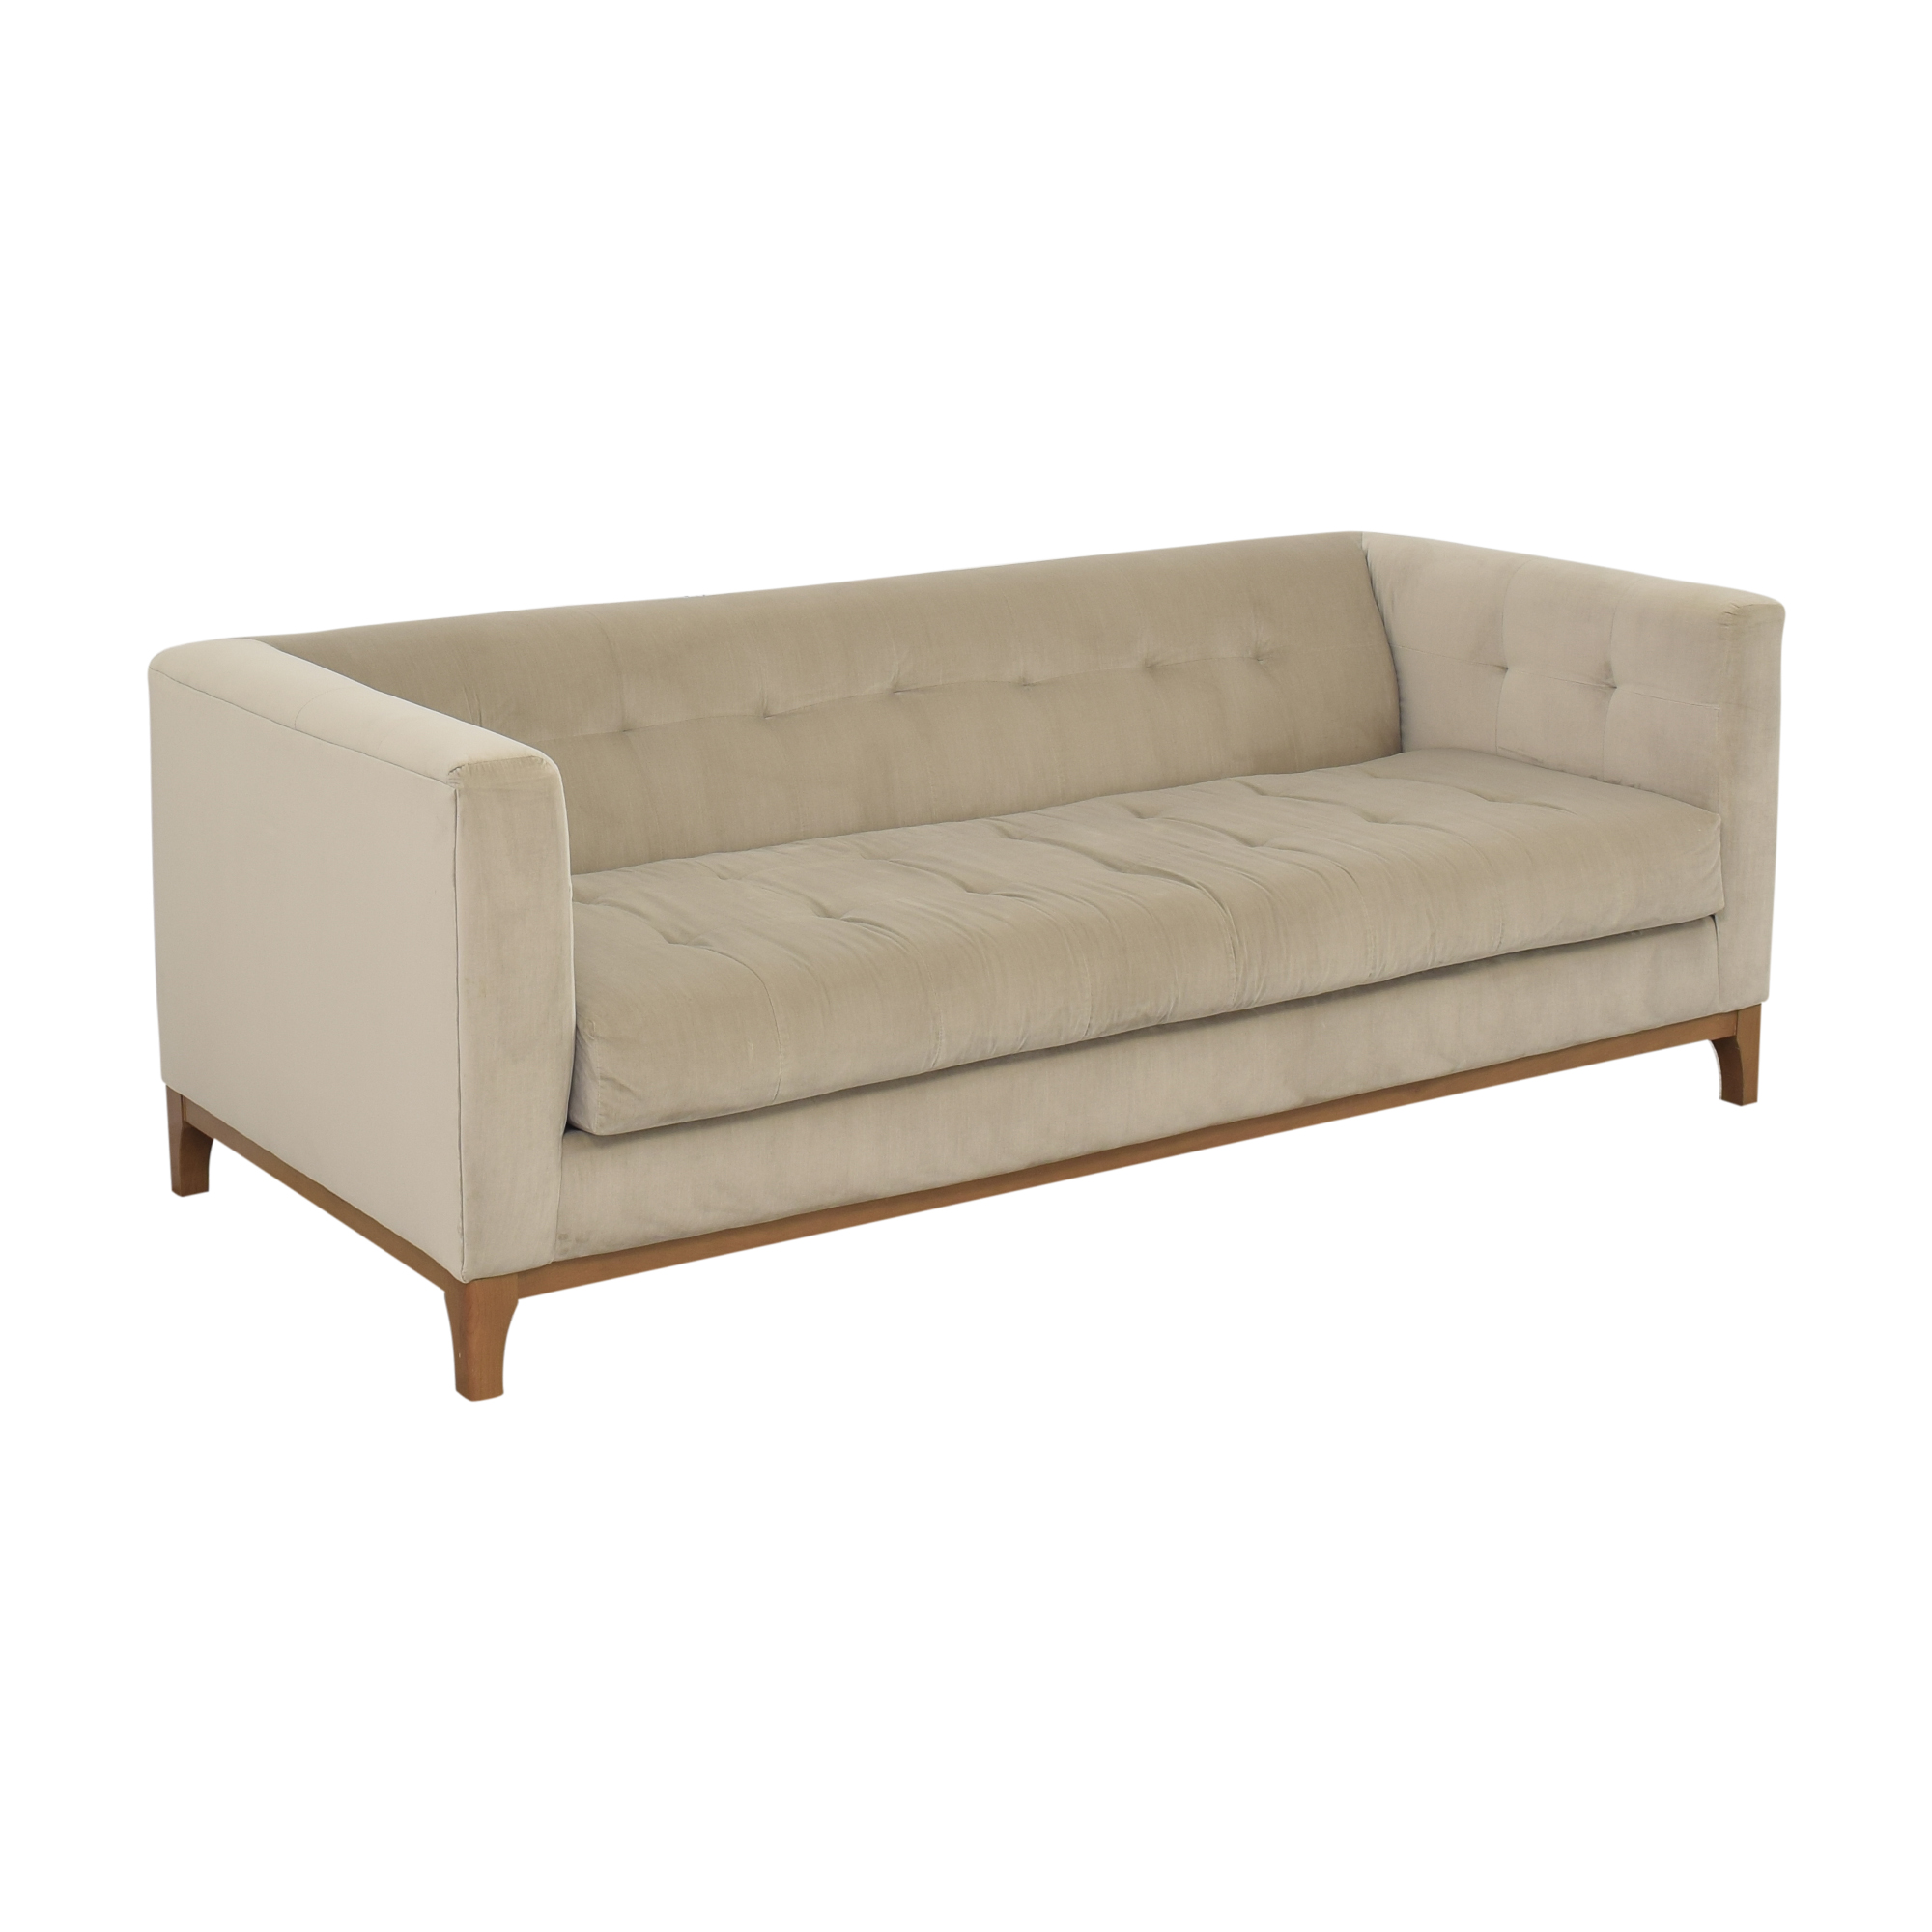 Macy's Macy's Martha Stewart Collection Brookline Sofa Sofas